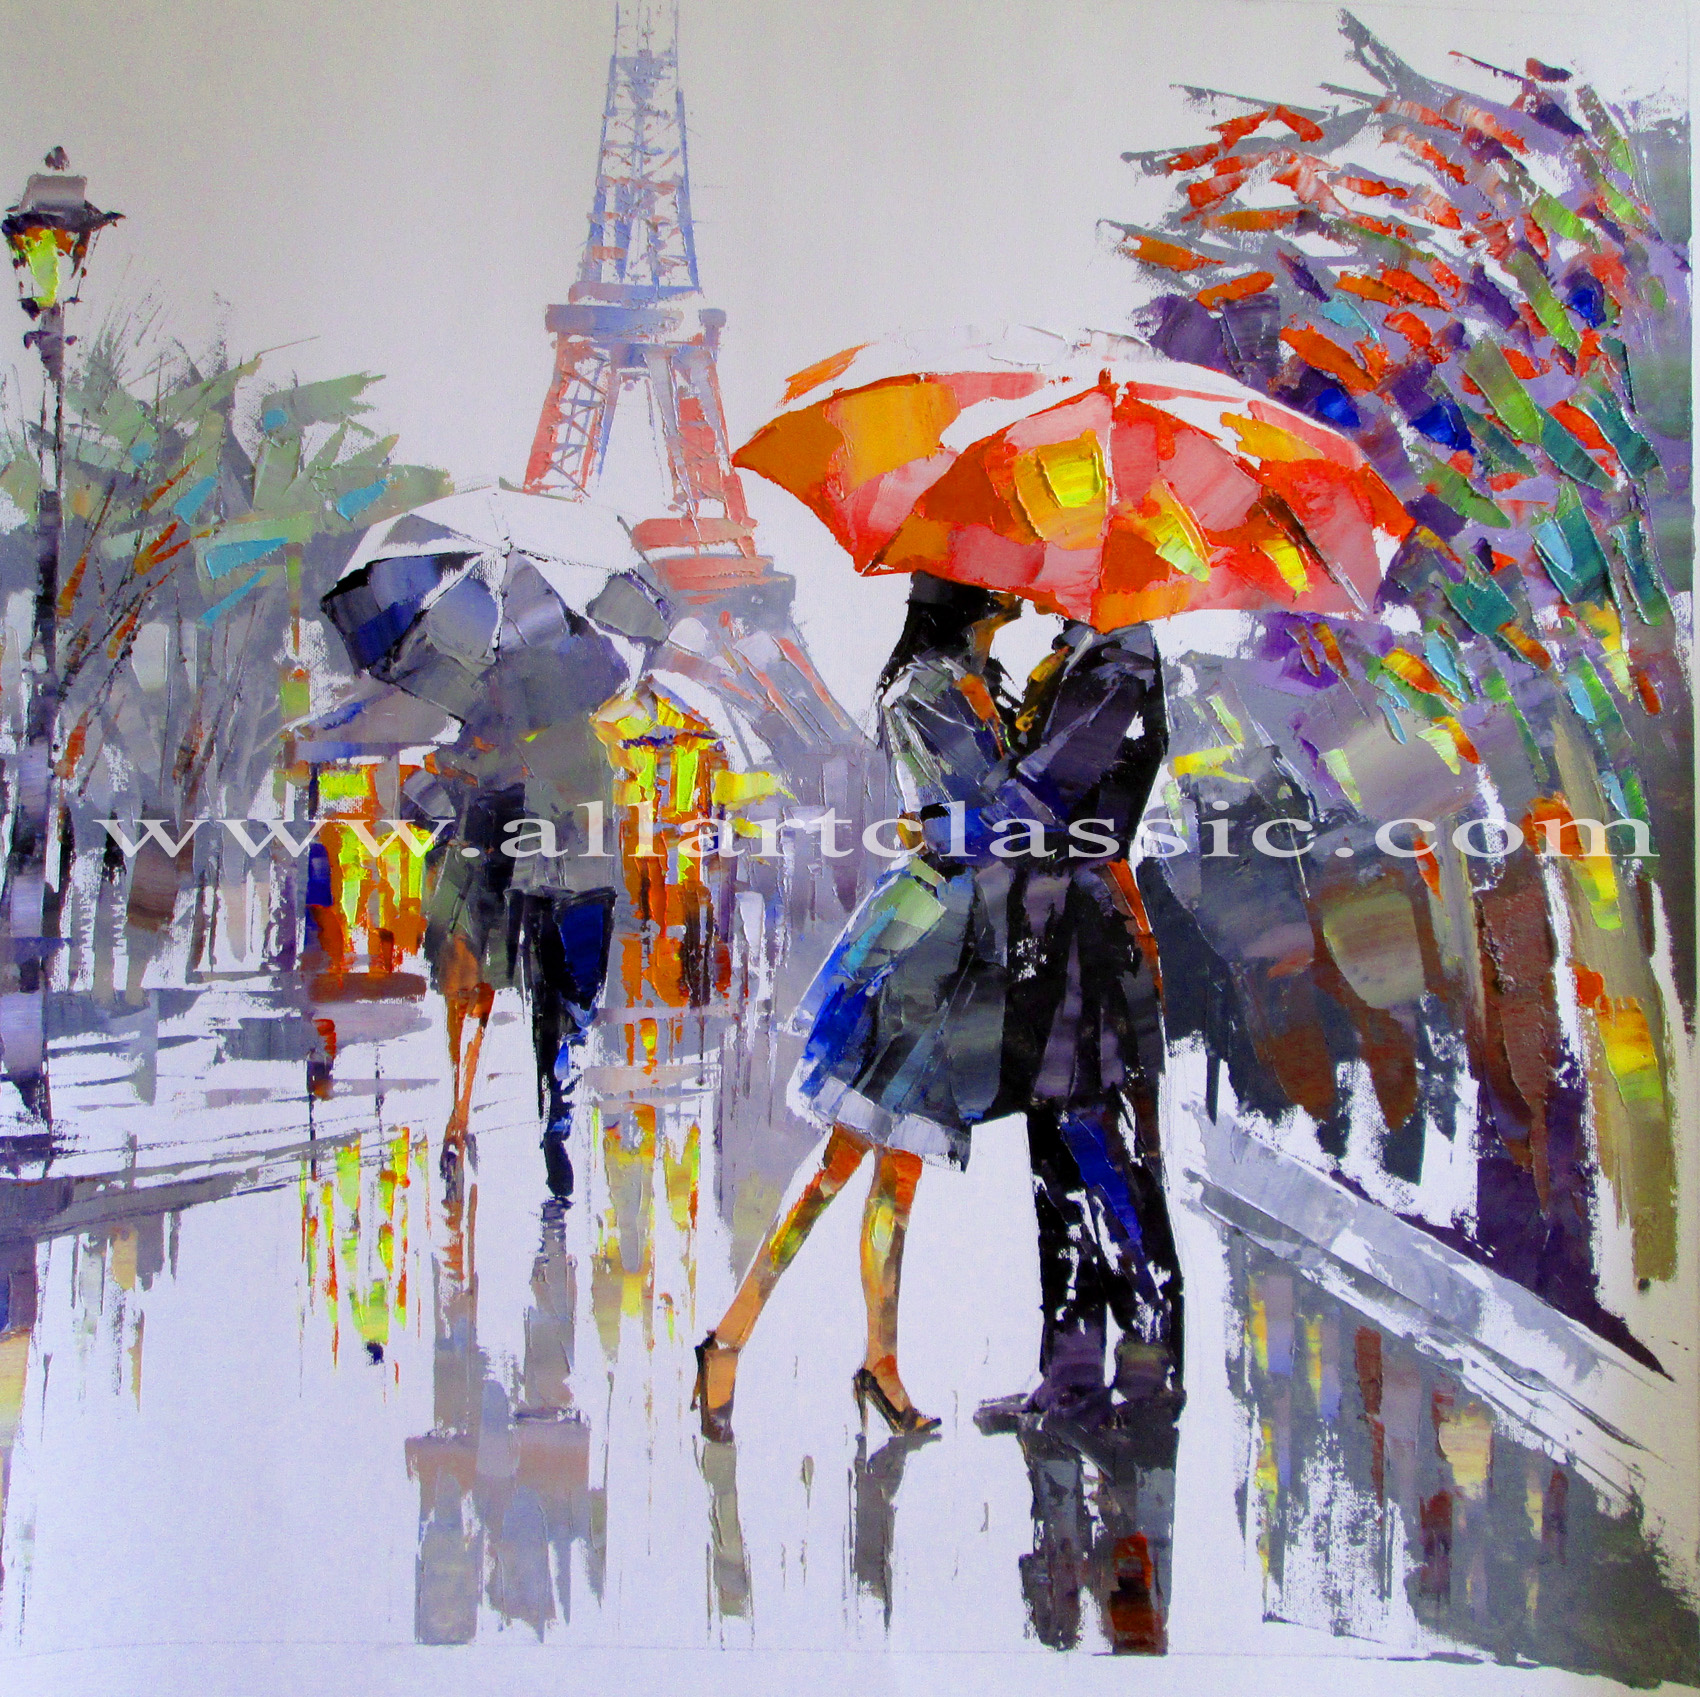 Buy Original Art Paintings